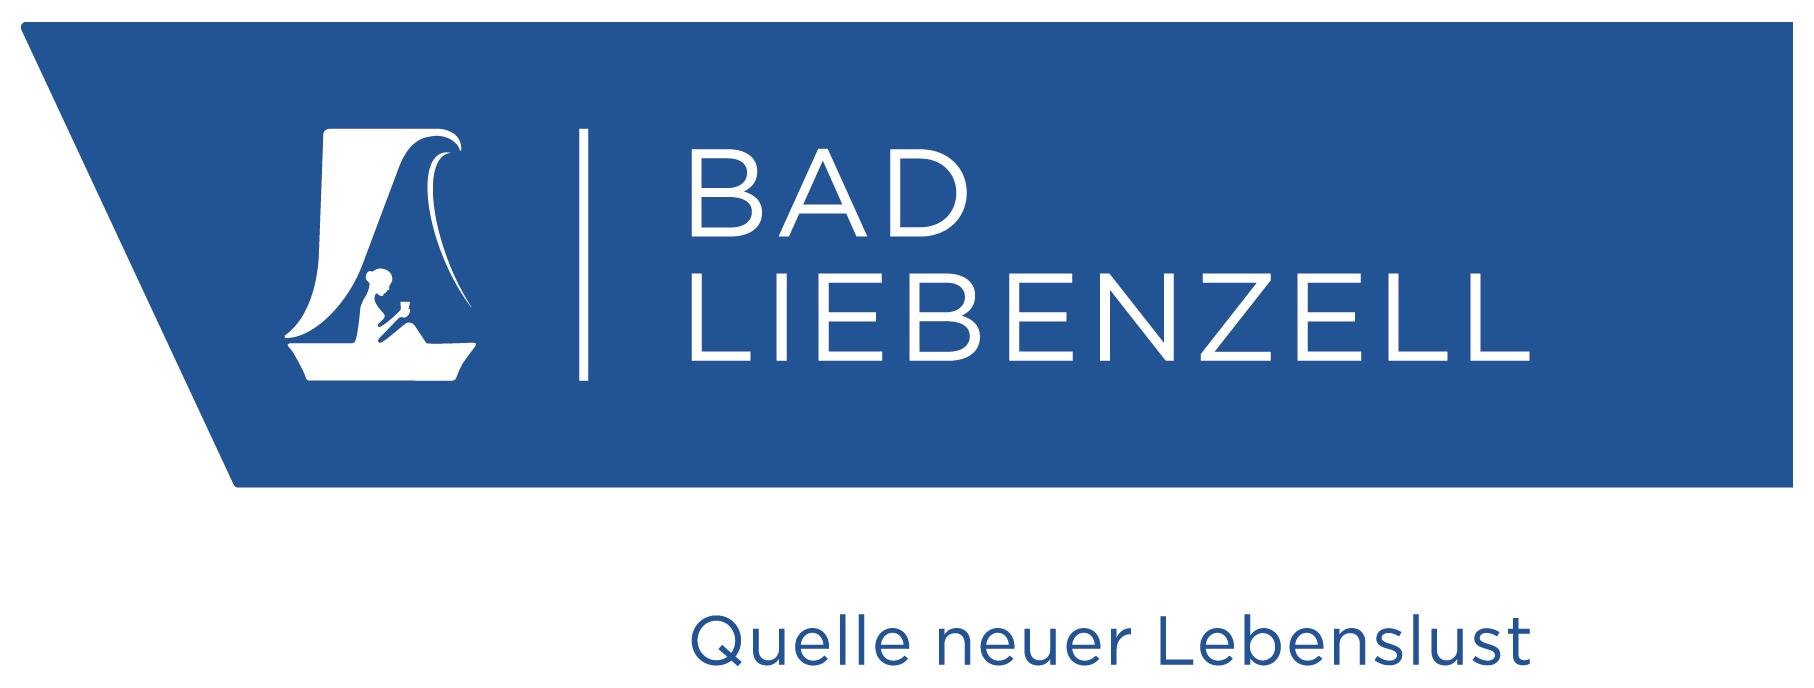 Bad Liebenzell Logo